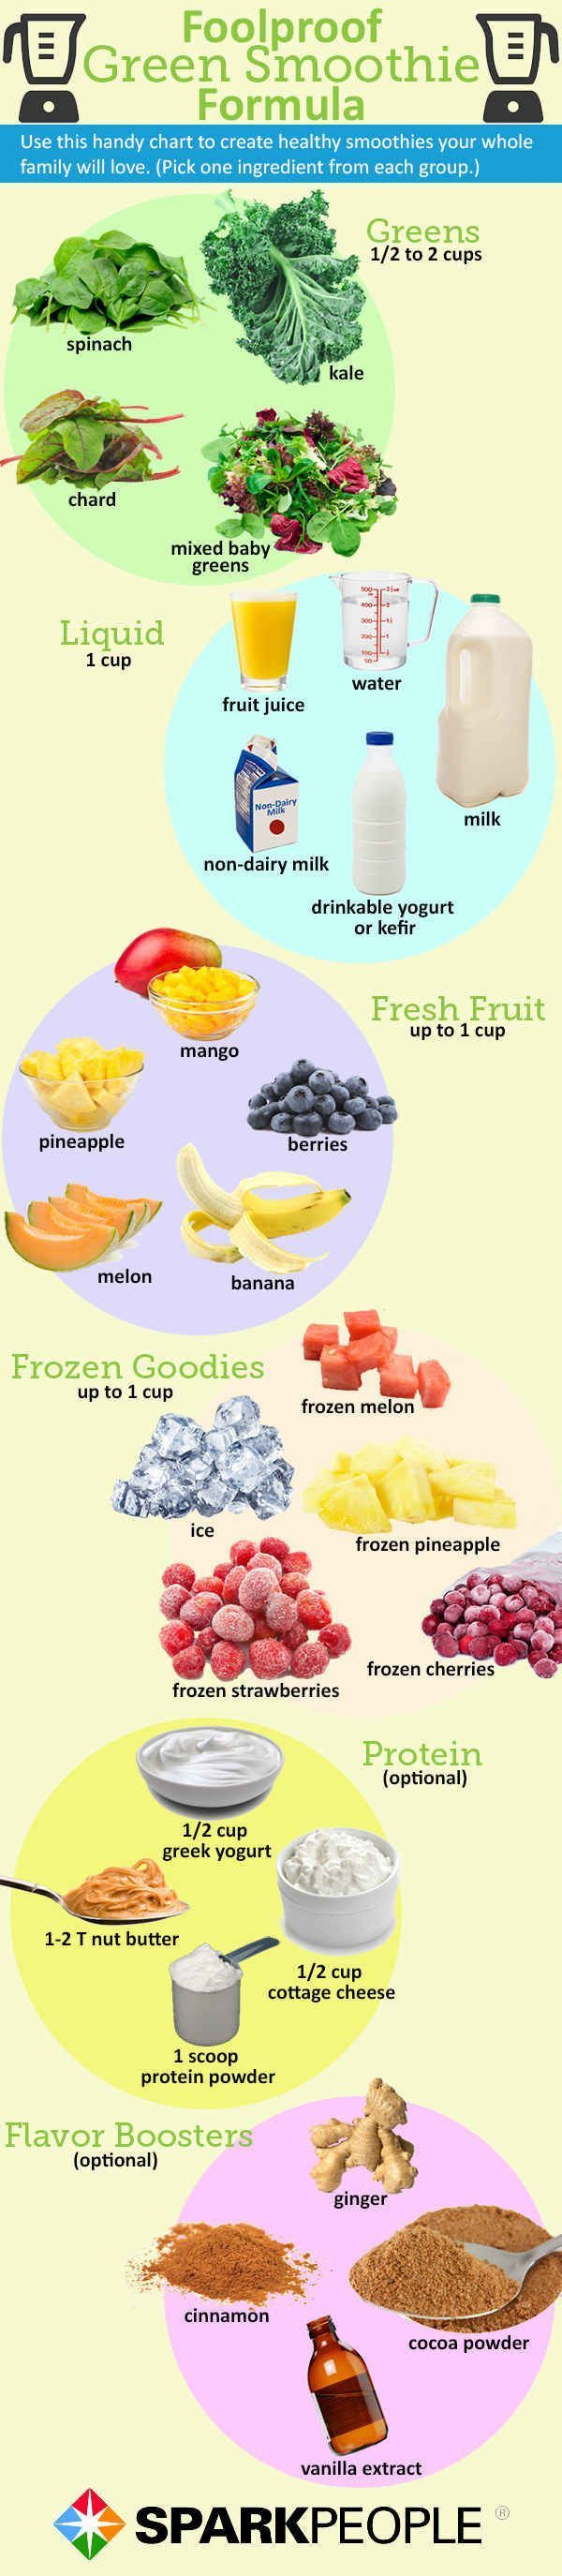 And for when you need a smoothie cheat sheet